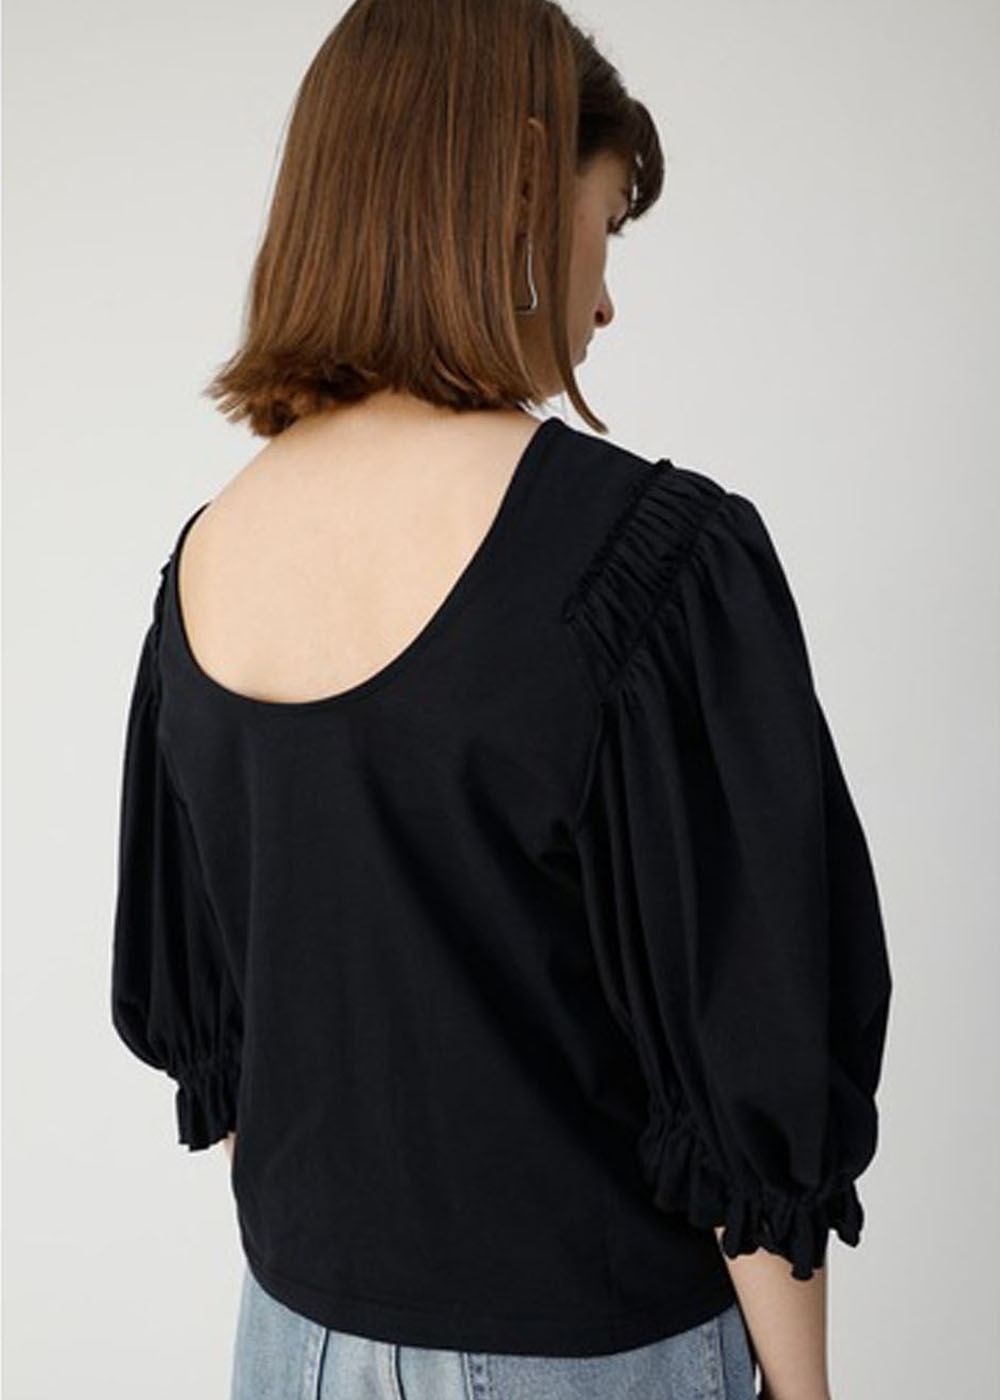 【最大70%OFF】VOLUME SLEEVE CUT TOP|BLK|カットソー|MOUSSY